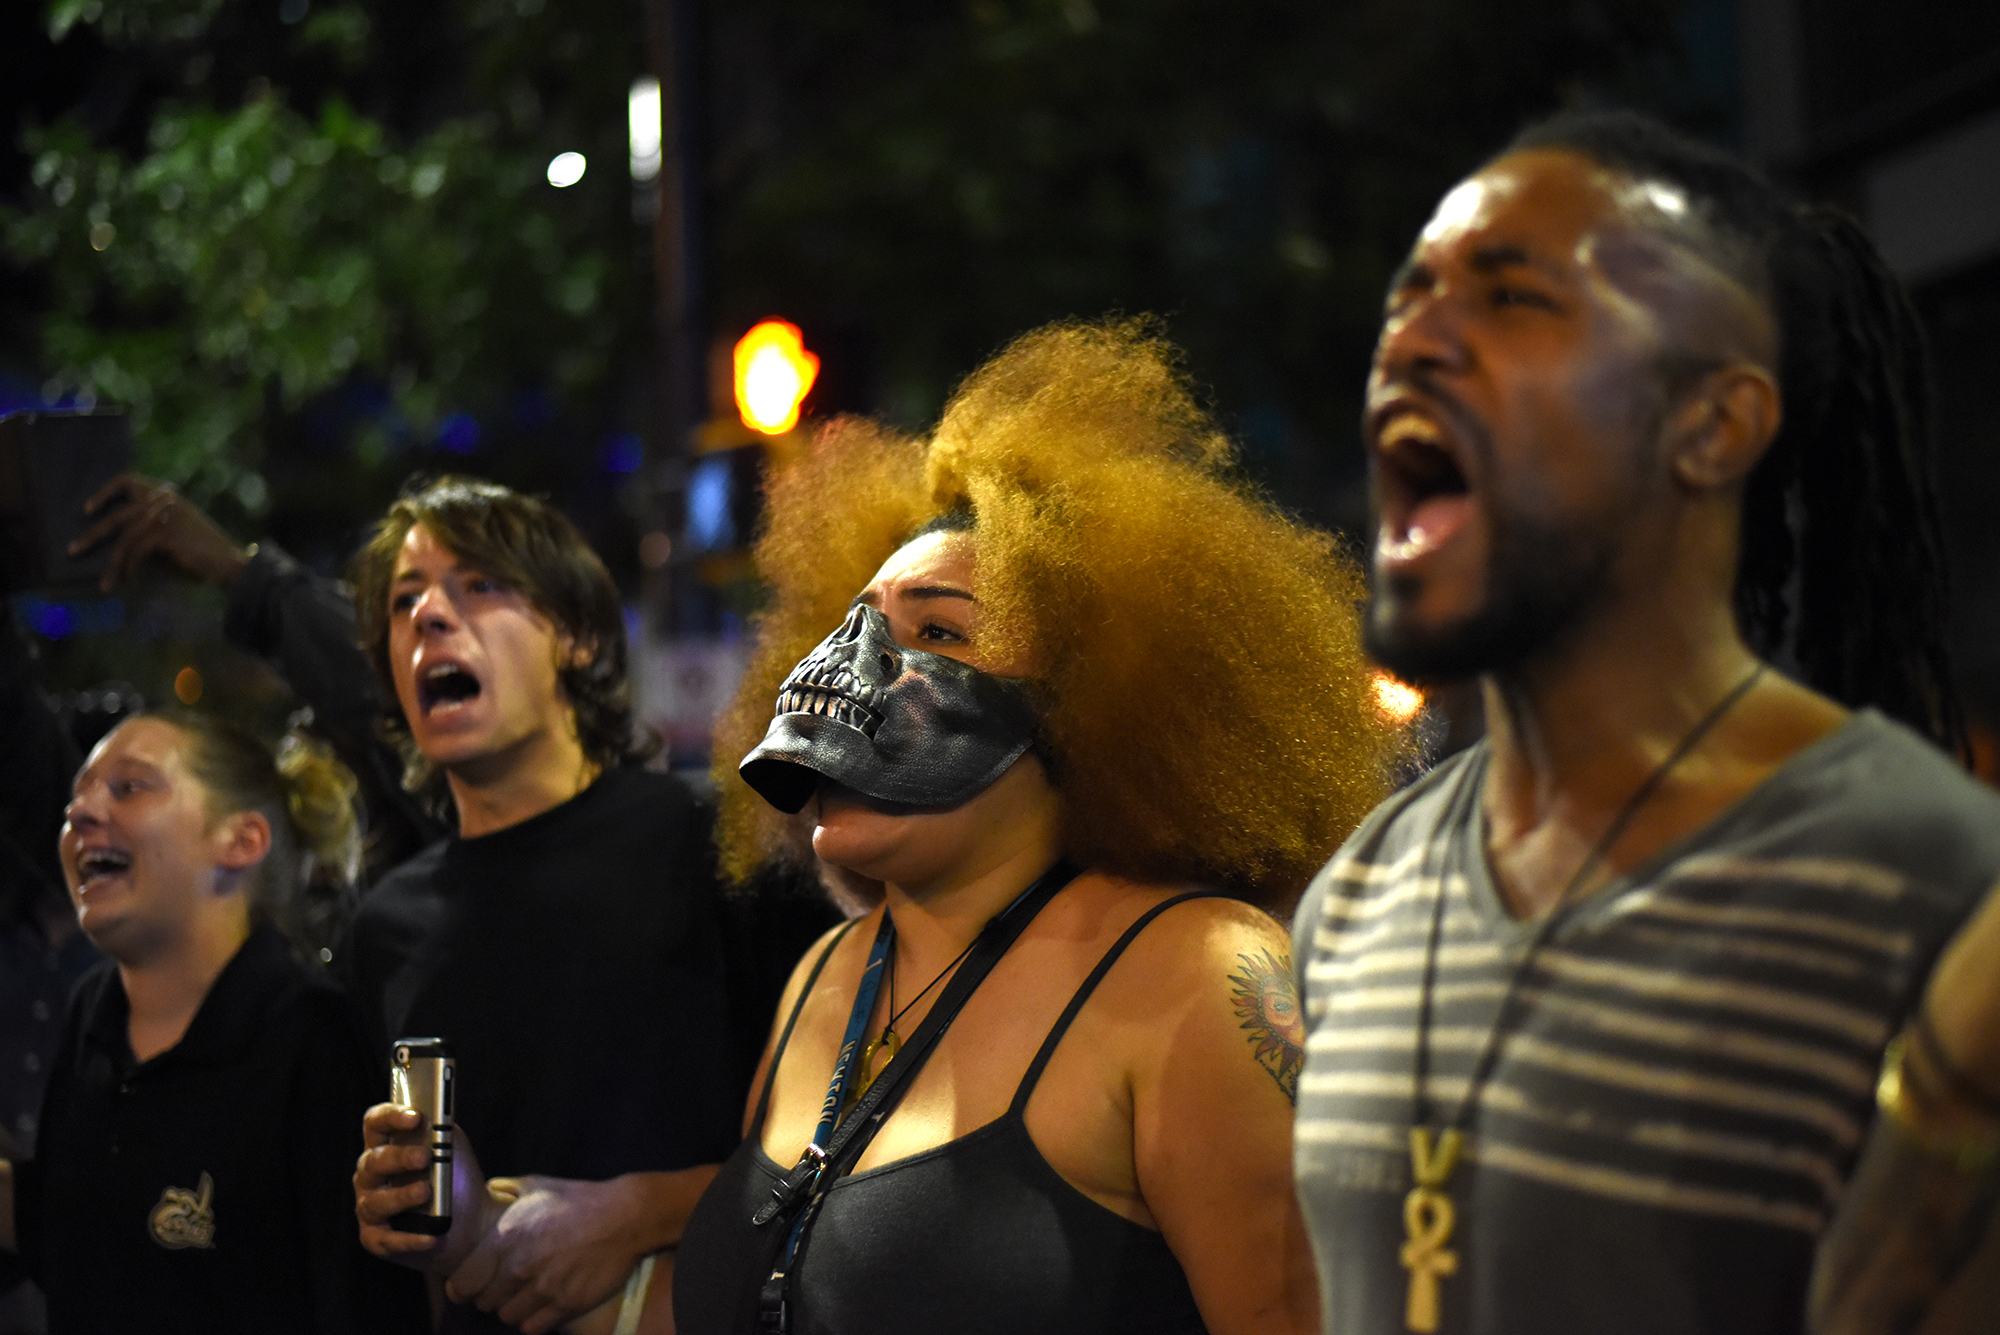 Protesters confront riot police officers in Charlotte, North Carolina, USA, 21 September 2016. North Carolina governor Pat McCrory declared a state of emergency after protesters took to the streets of Charlotte, North Carolina, for the second consecutive night to demonstrate against the fatal shooting of African-American Keith Lamont Scott by police officers.